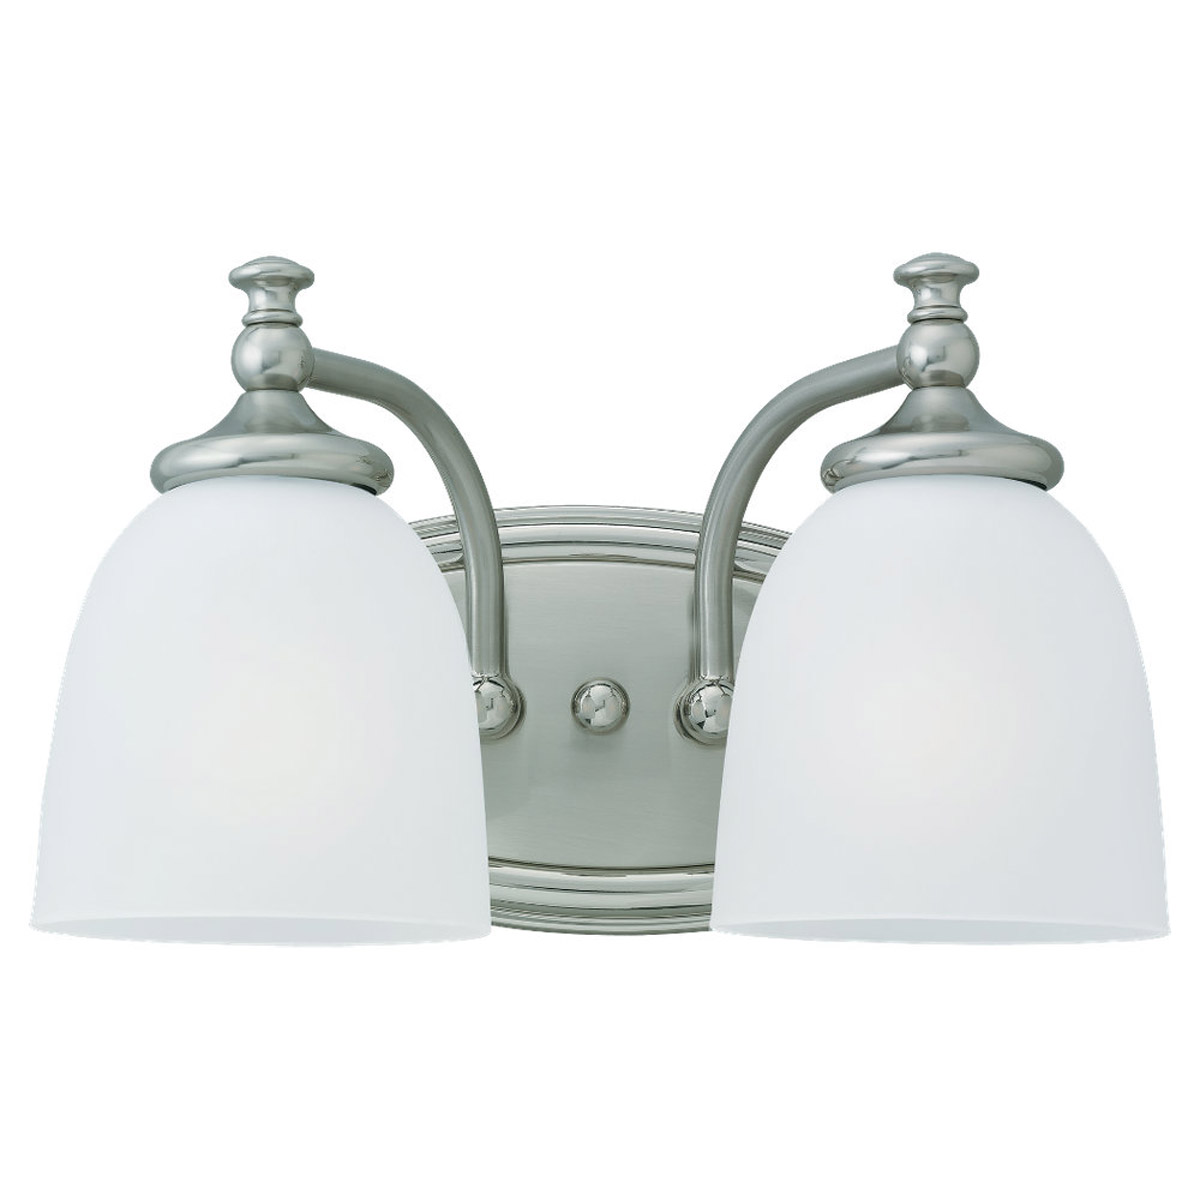 Sea Gull Lighting Colonnade 2 Light Wall / Bath / Vanity in Two Tone Nickel 44276-773 photo